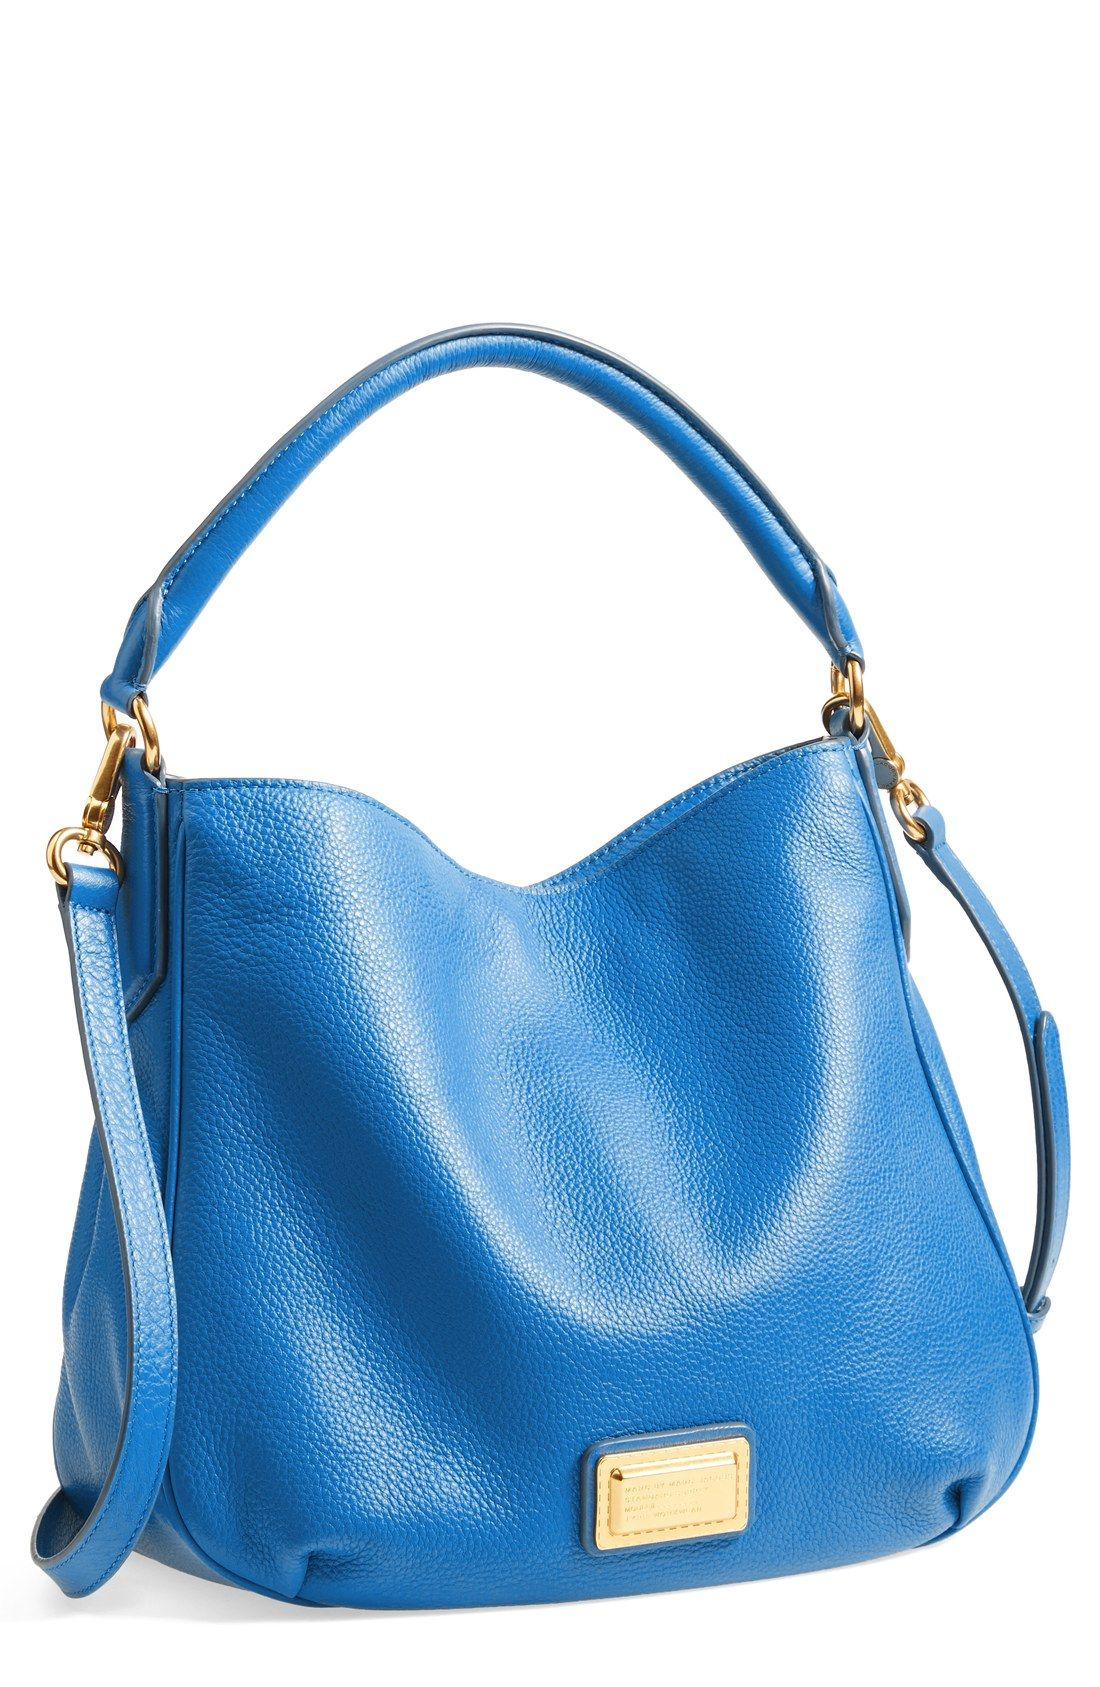 68d9f0308eb4 Love this bright hobo bag from Marc by Marc Jacobs